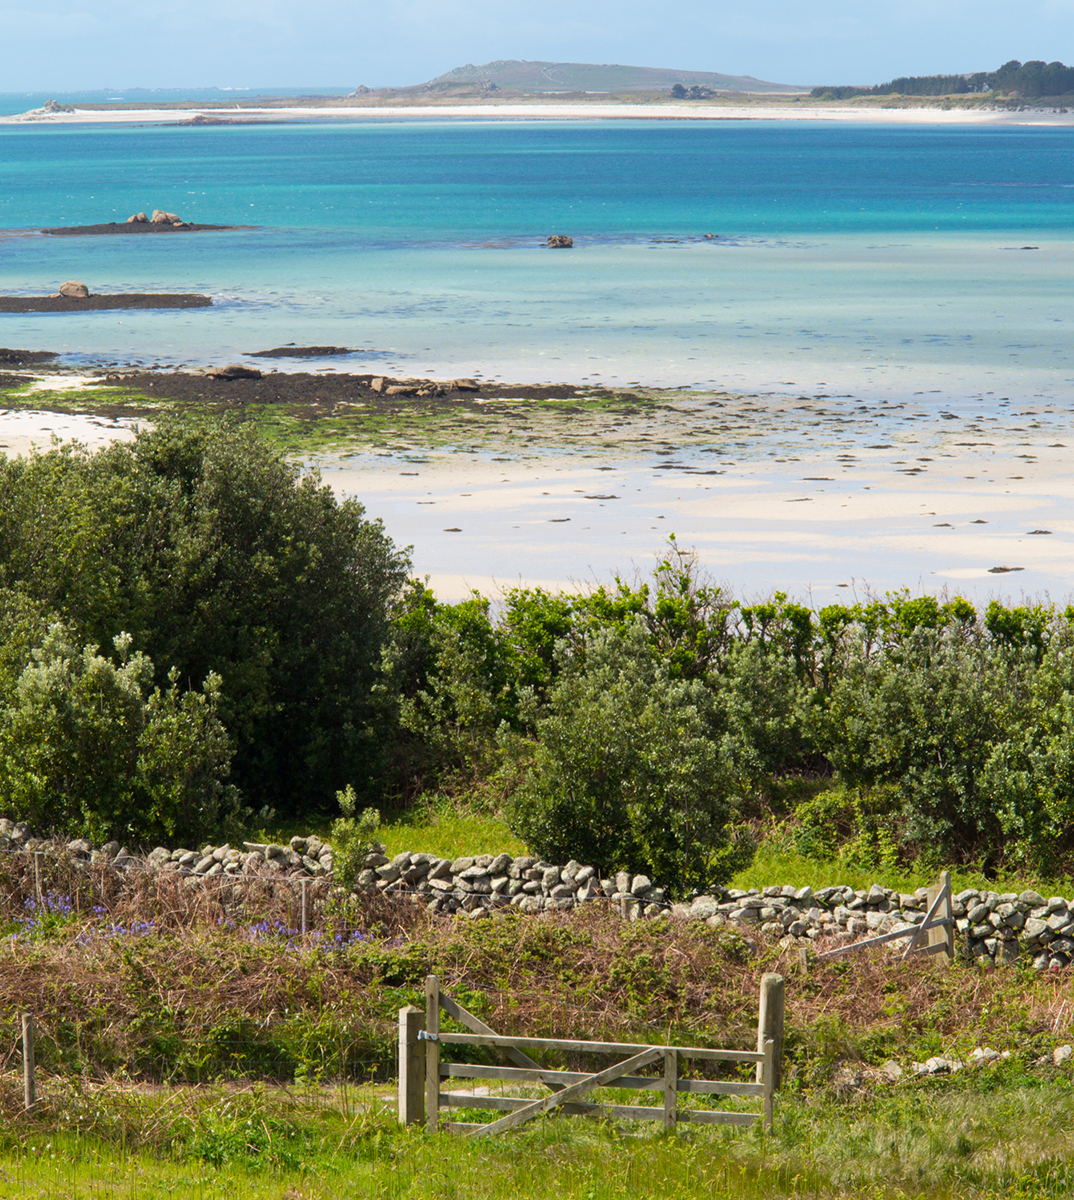 056 Isles of Scilly_ScillyMay2014-97